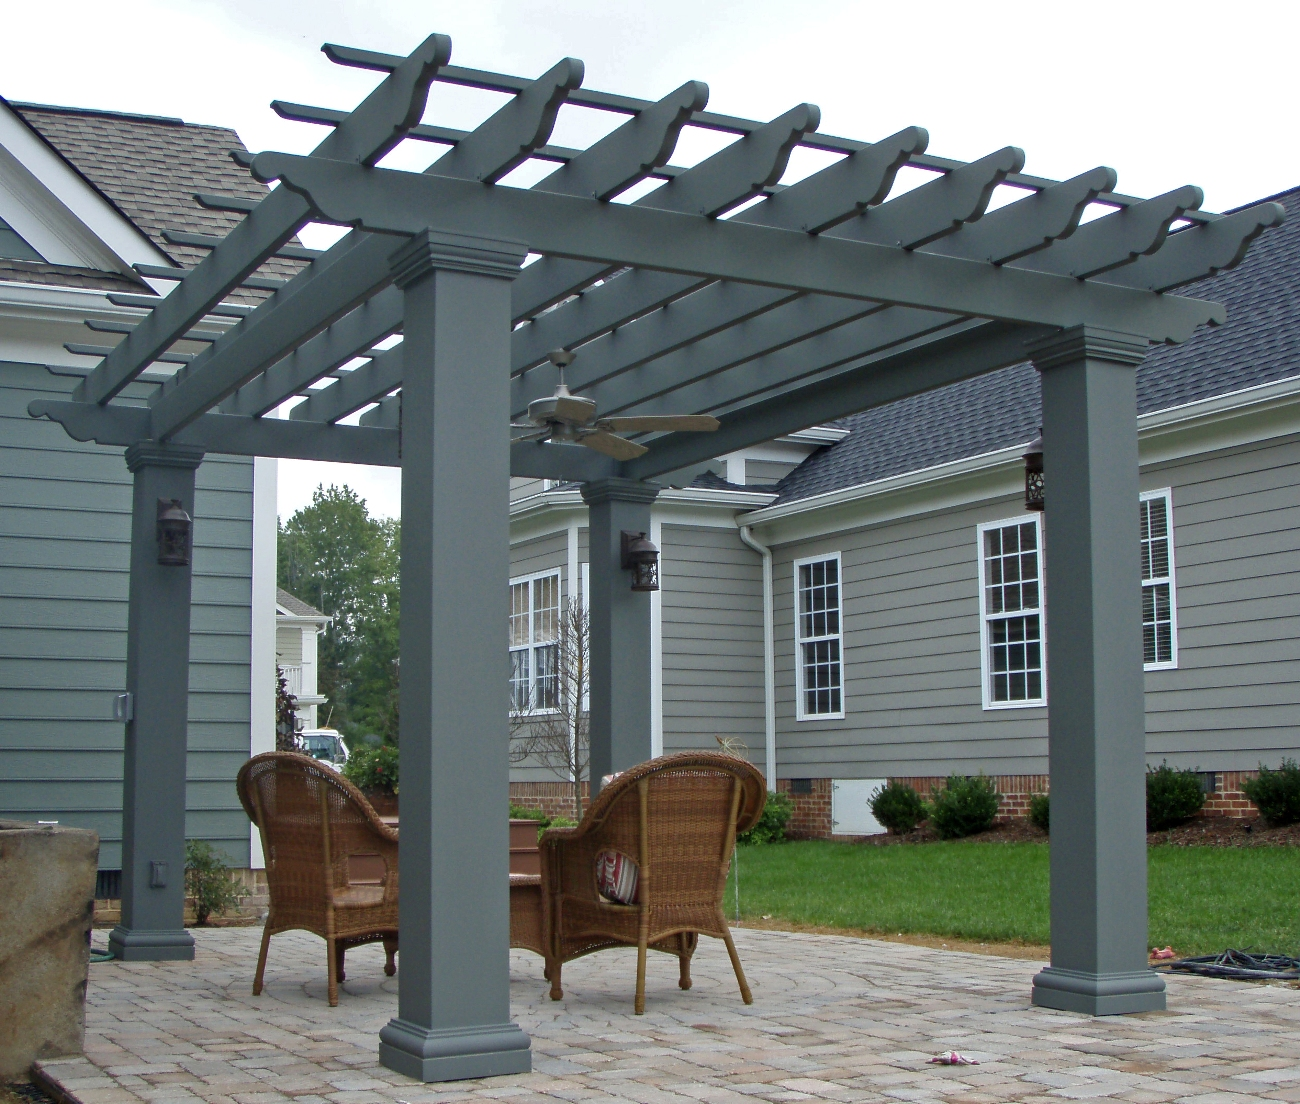 Square Fiberglass Outdoor Pergola Kit   Column Centers: 12u0027 X 12u0027    Chadsworth Columns: Shop.columns.com